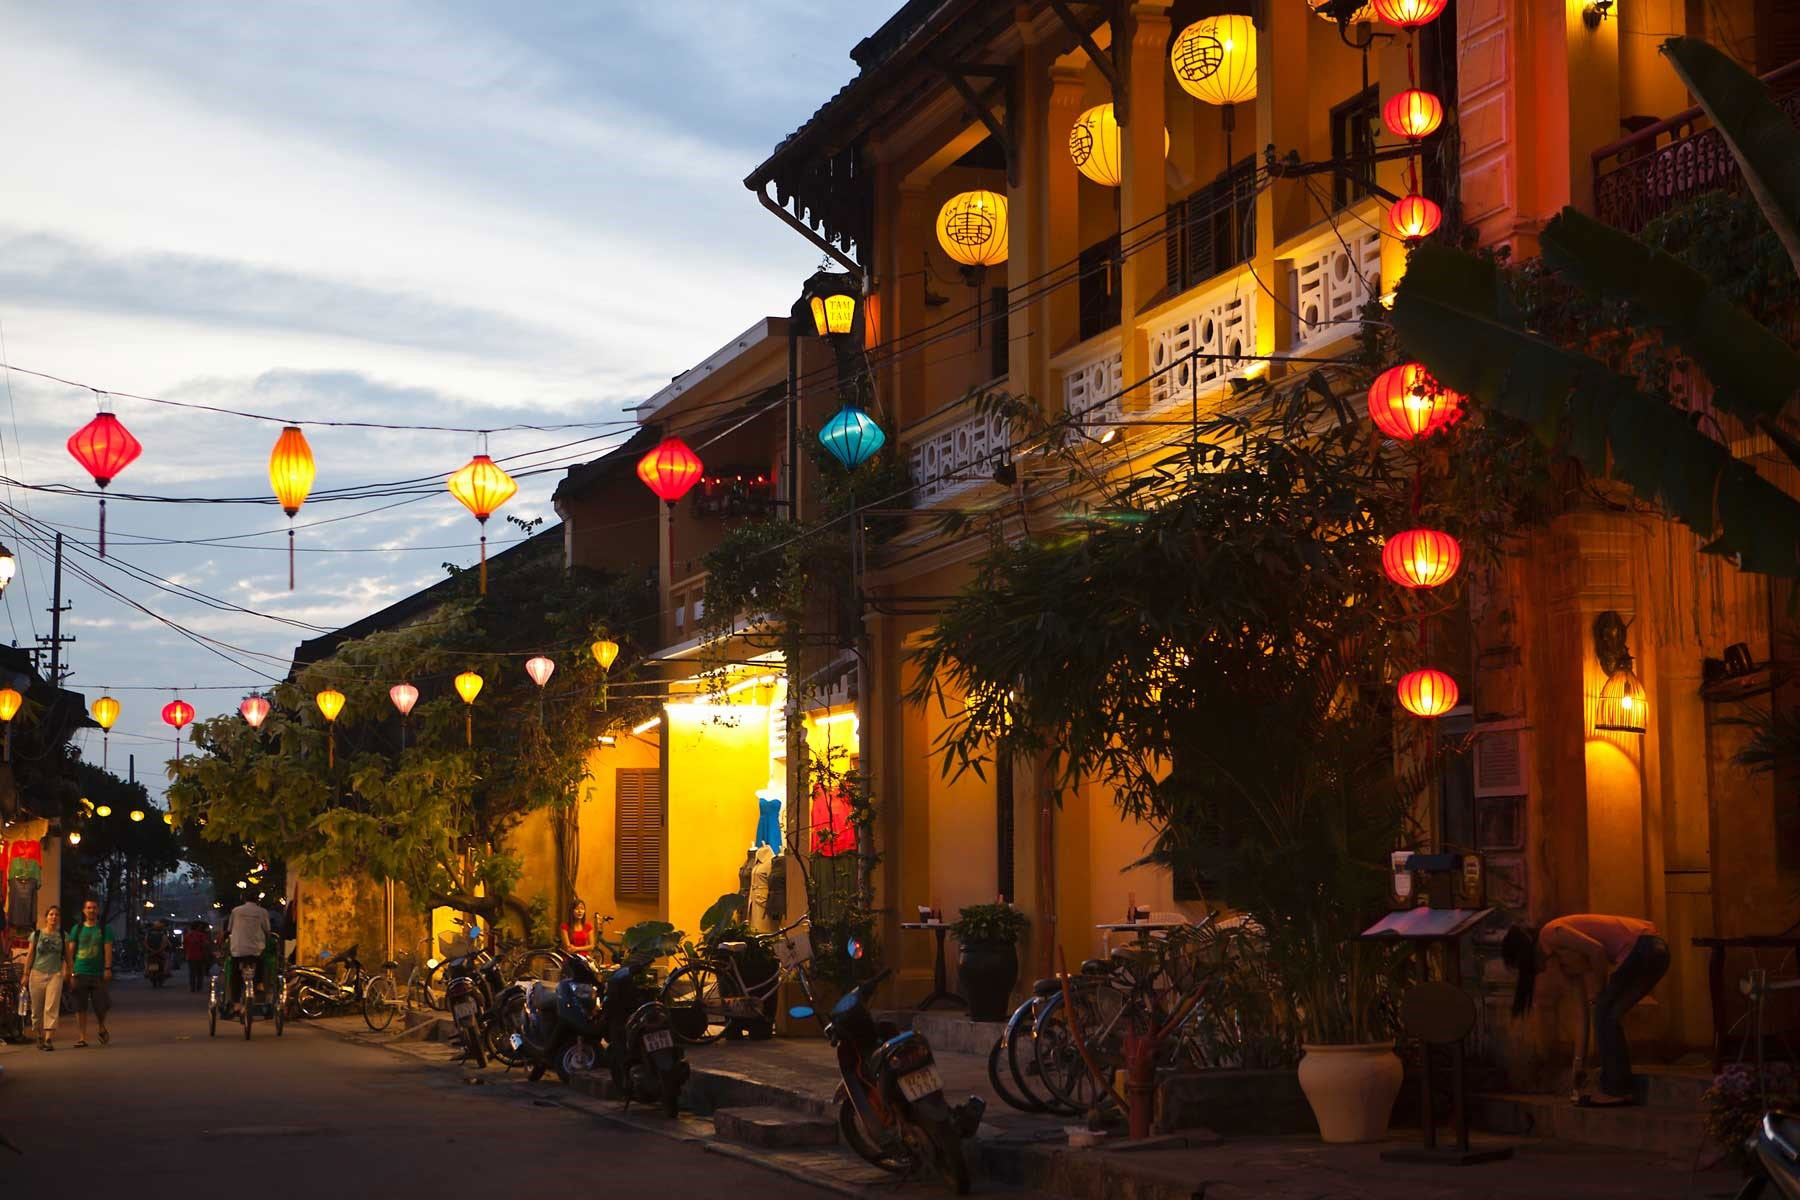 A corner of Hoi An in the late afternoon. Photo: gettyimage